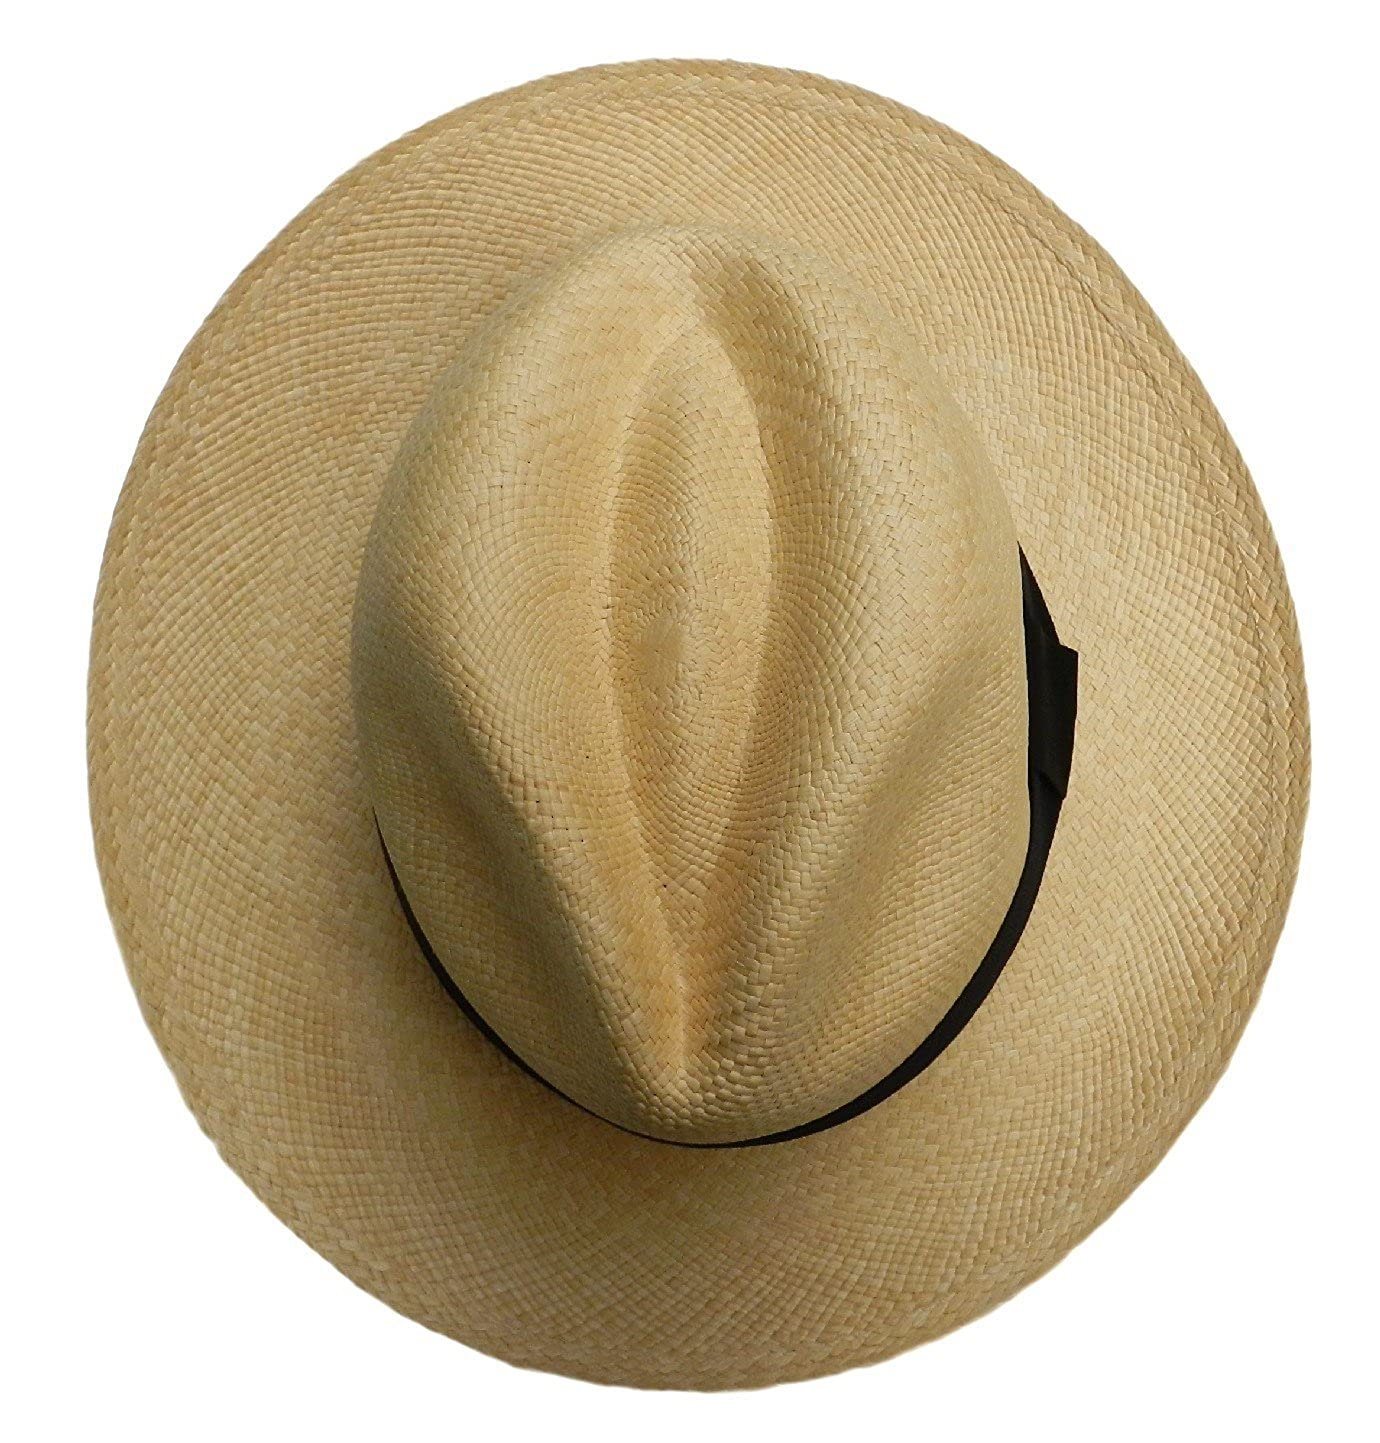 Equal Earth New Genuine Panama Hat Rolling Folding Quality with Travel Tube  - Natural  Amazon.co.uk  Clothing fc595d6a7c33